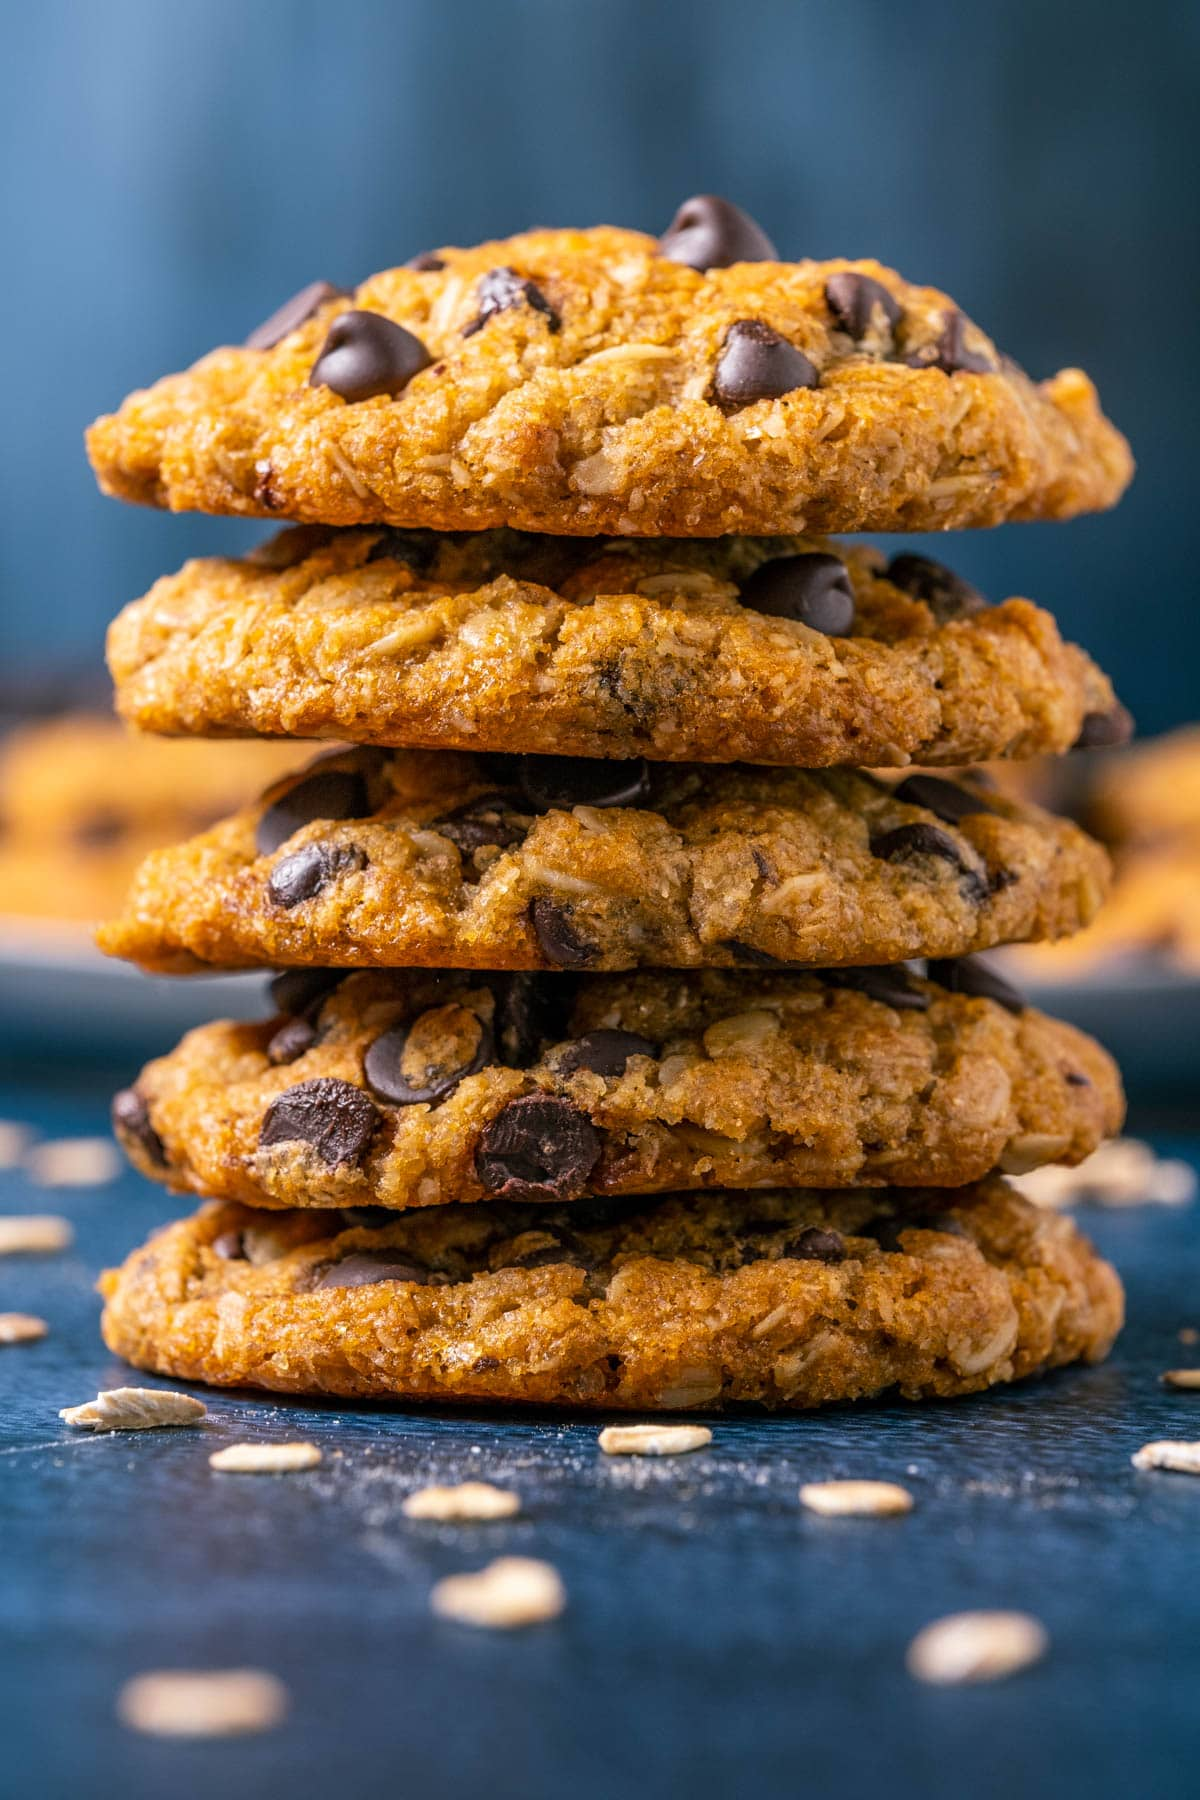 Five oatmeal chocolate chip cookies in a stack.